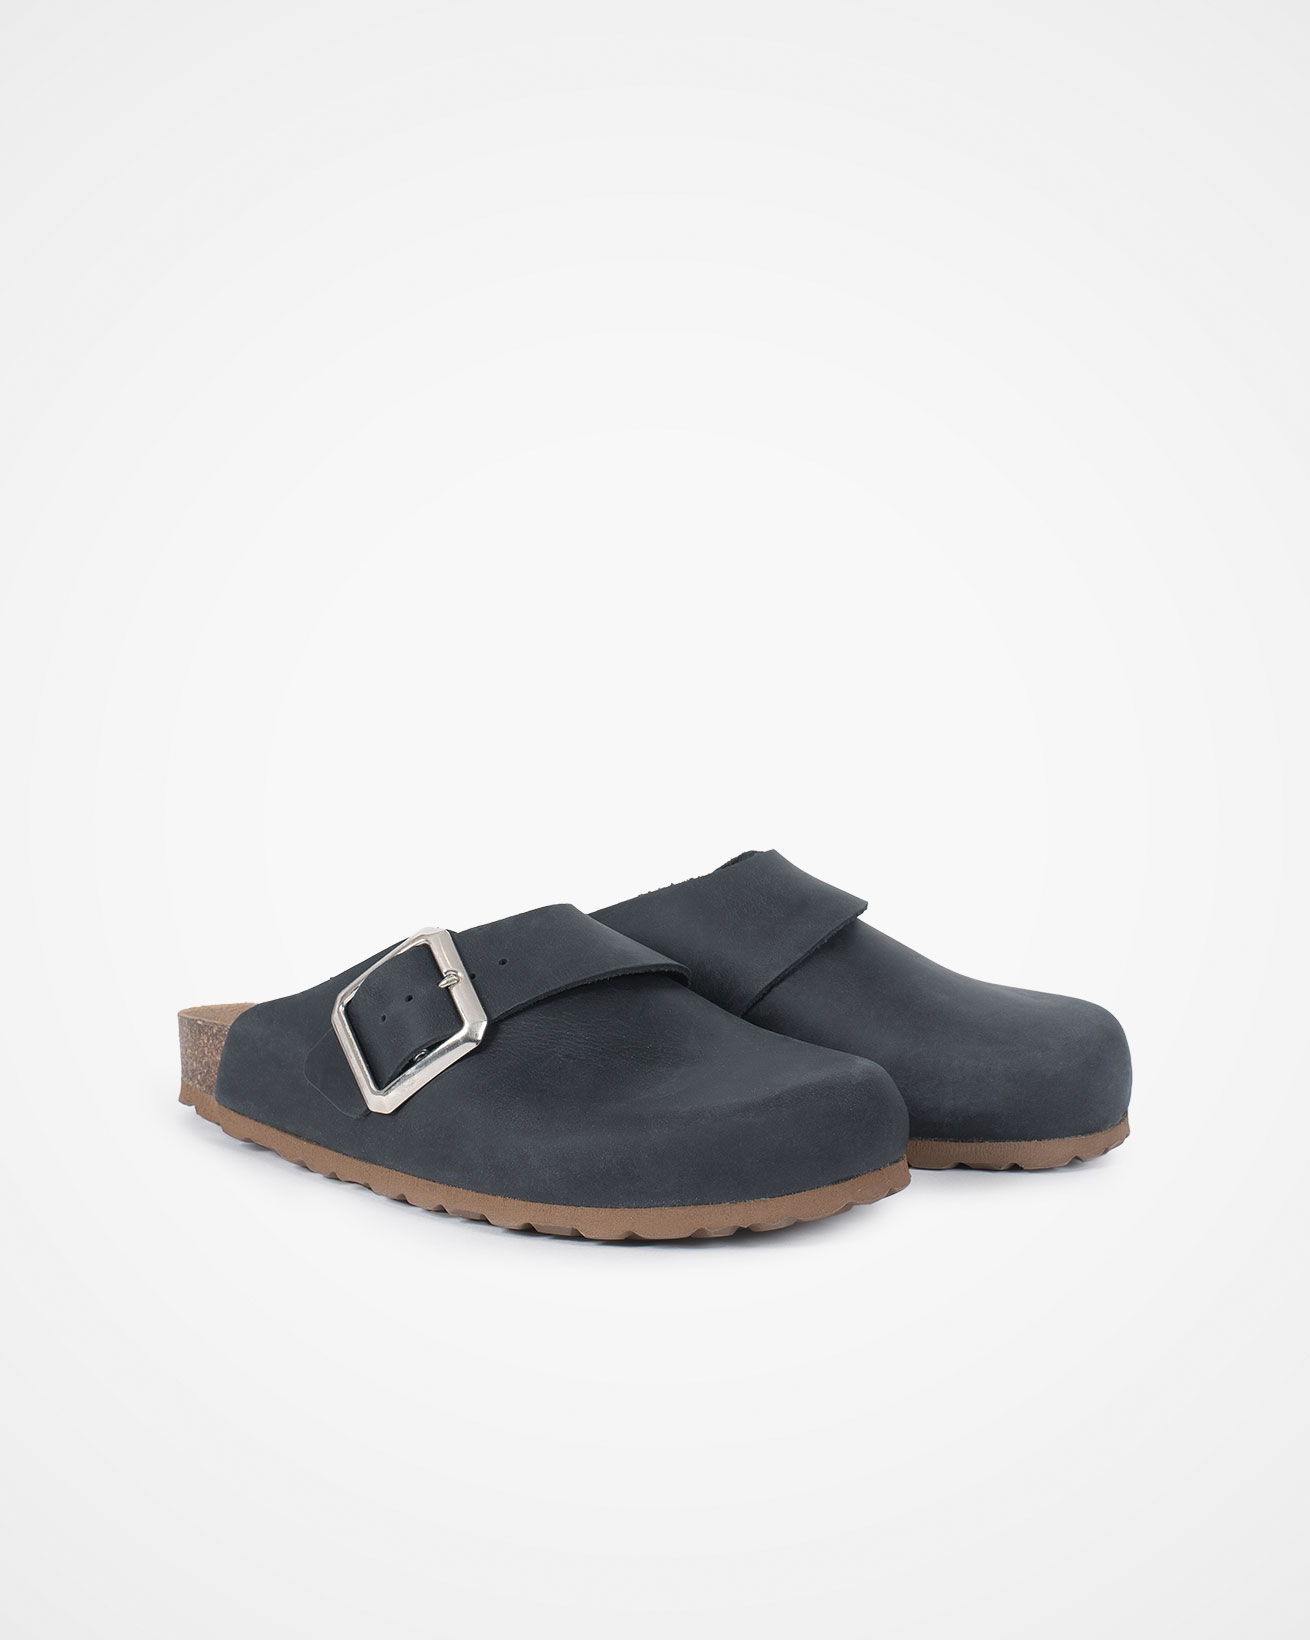 7788_slip-on-clogs_navy_pair.jpg